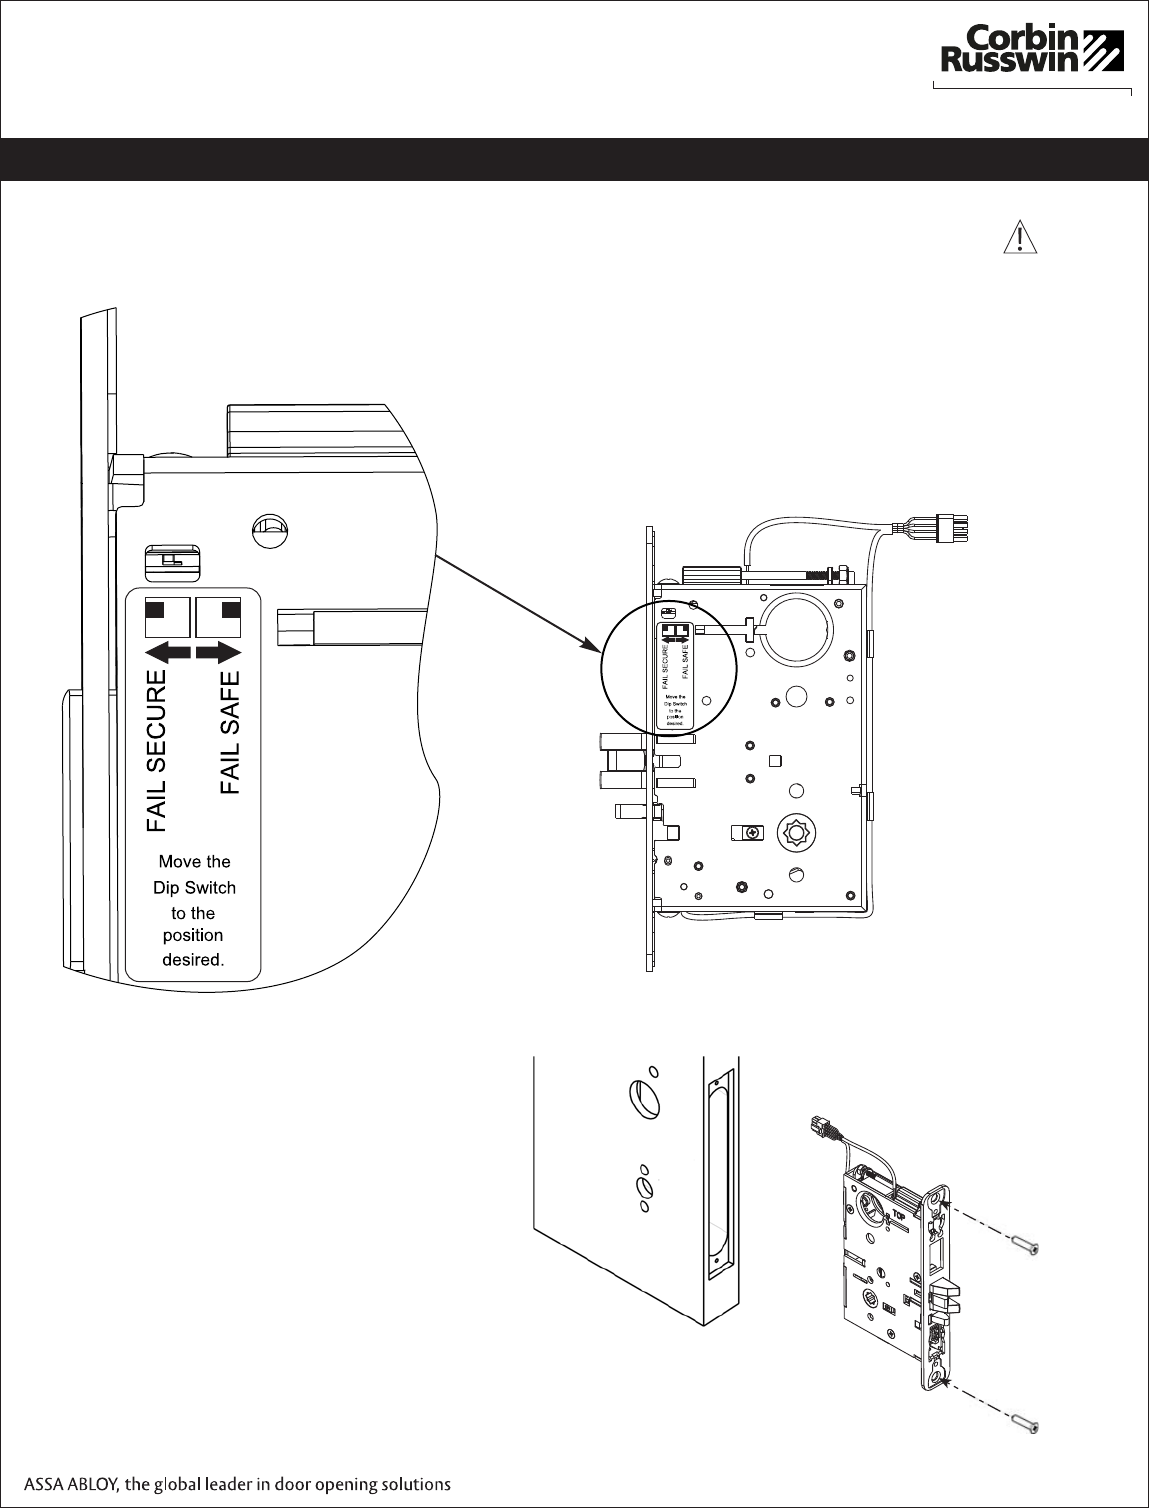 Corbin Russwin Ml20900 Electrified Mortise Lock Installation Wiring Diagram Spdt Dip Switch Configuration Instructions Fm357 Ml209002802 1429optimizedmobile